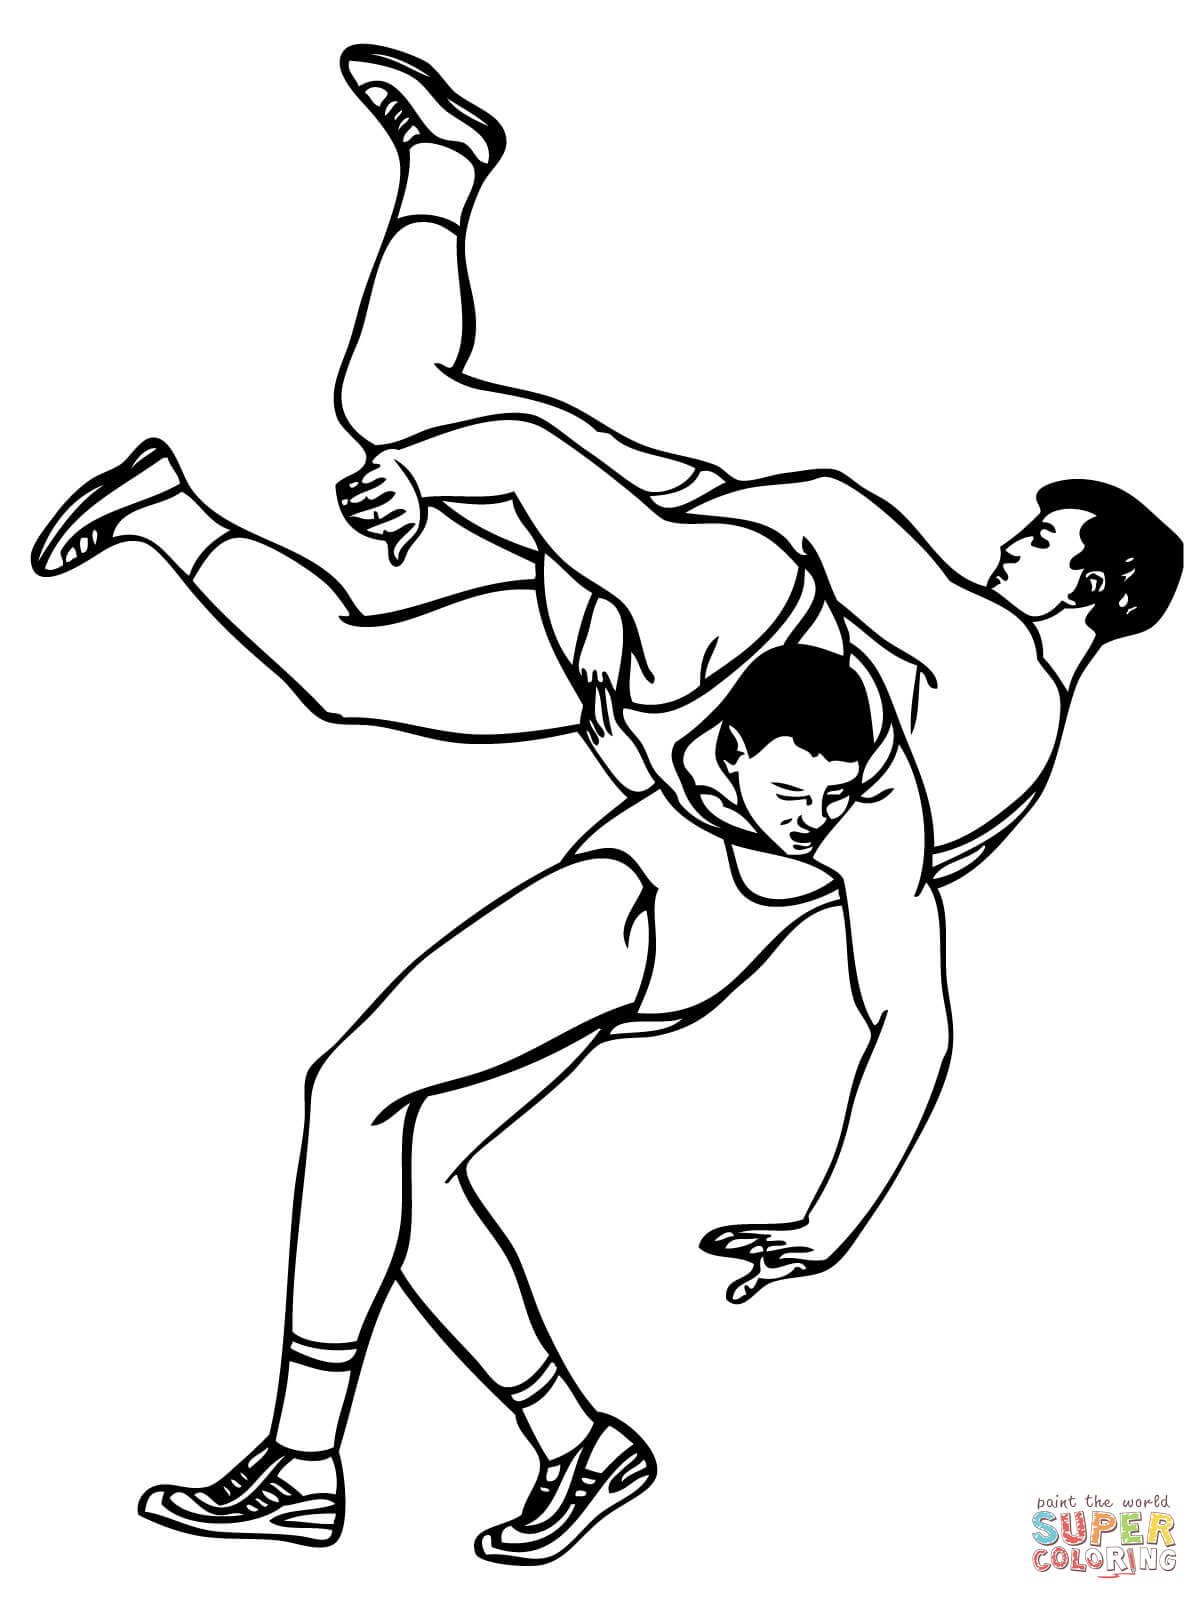 Greco Roman Wrestling Throw Coloring Online